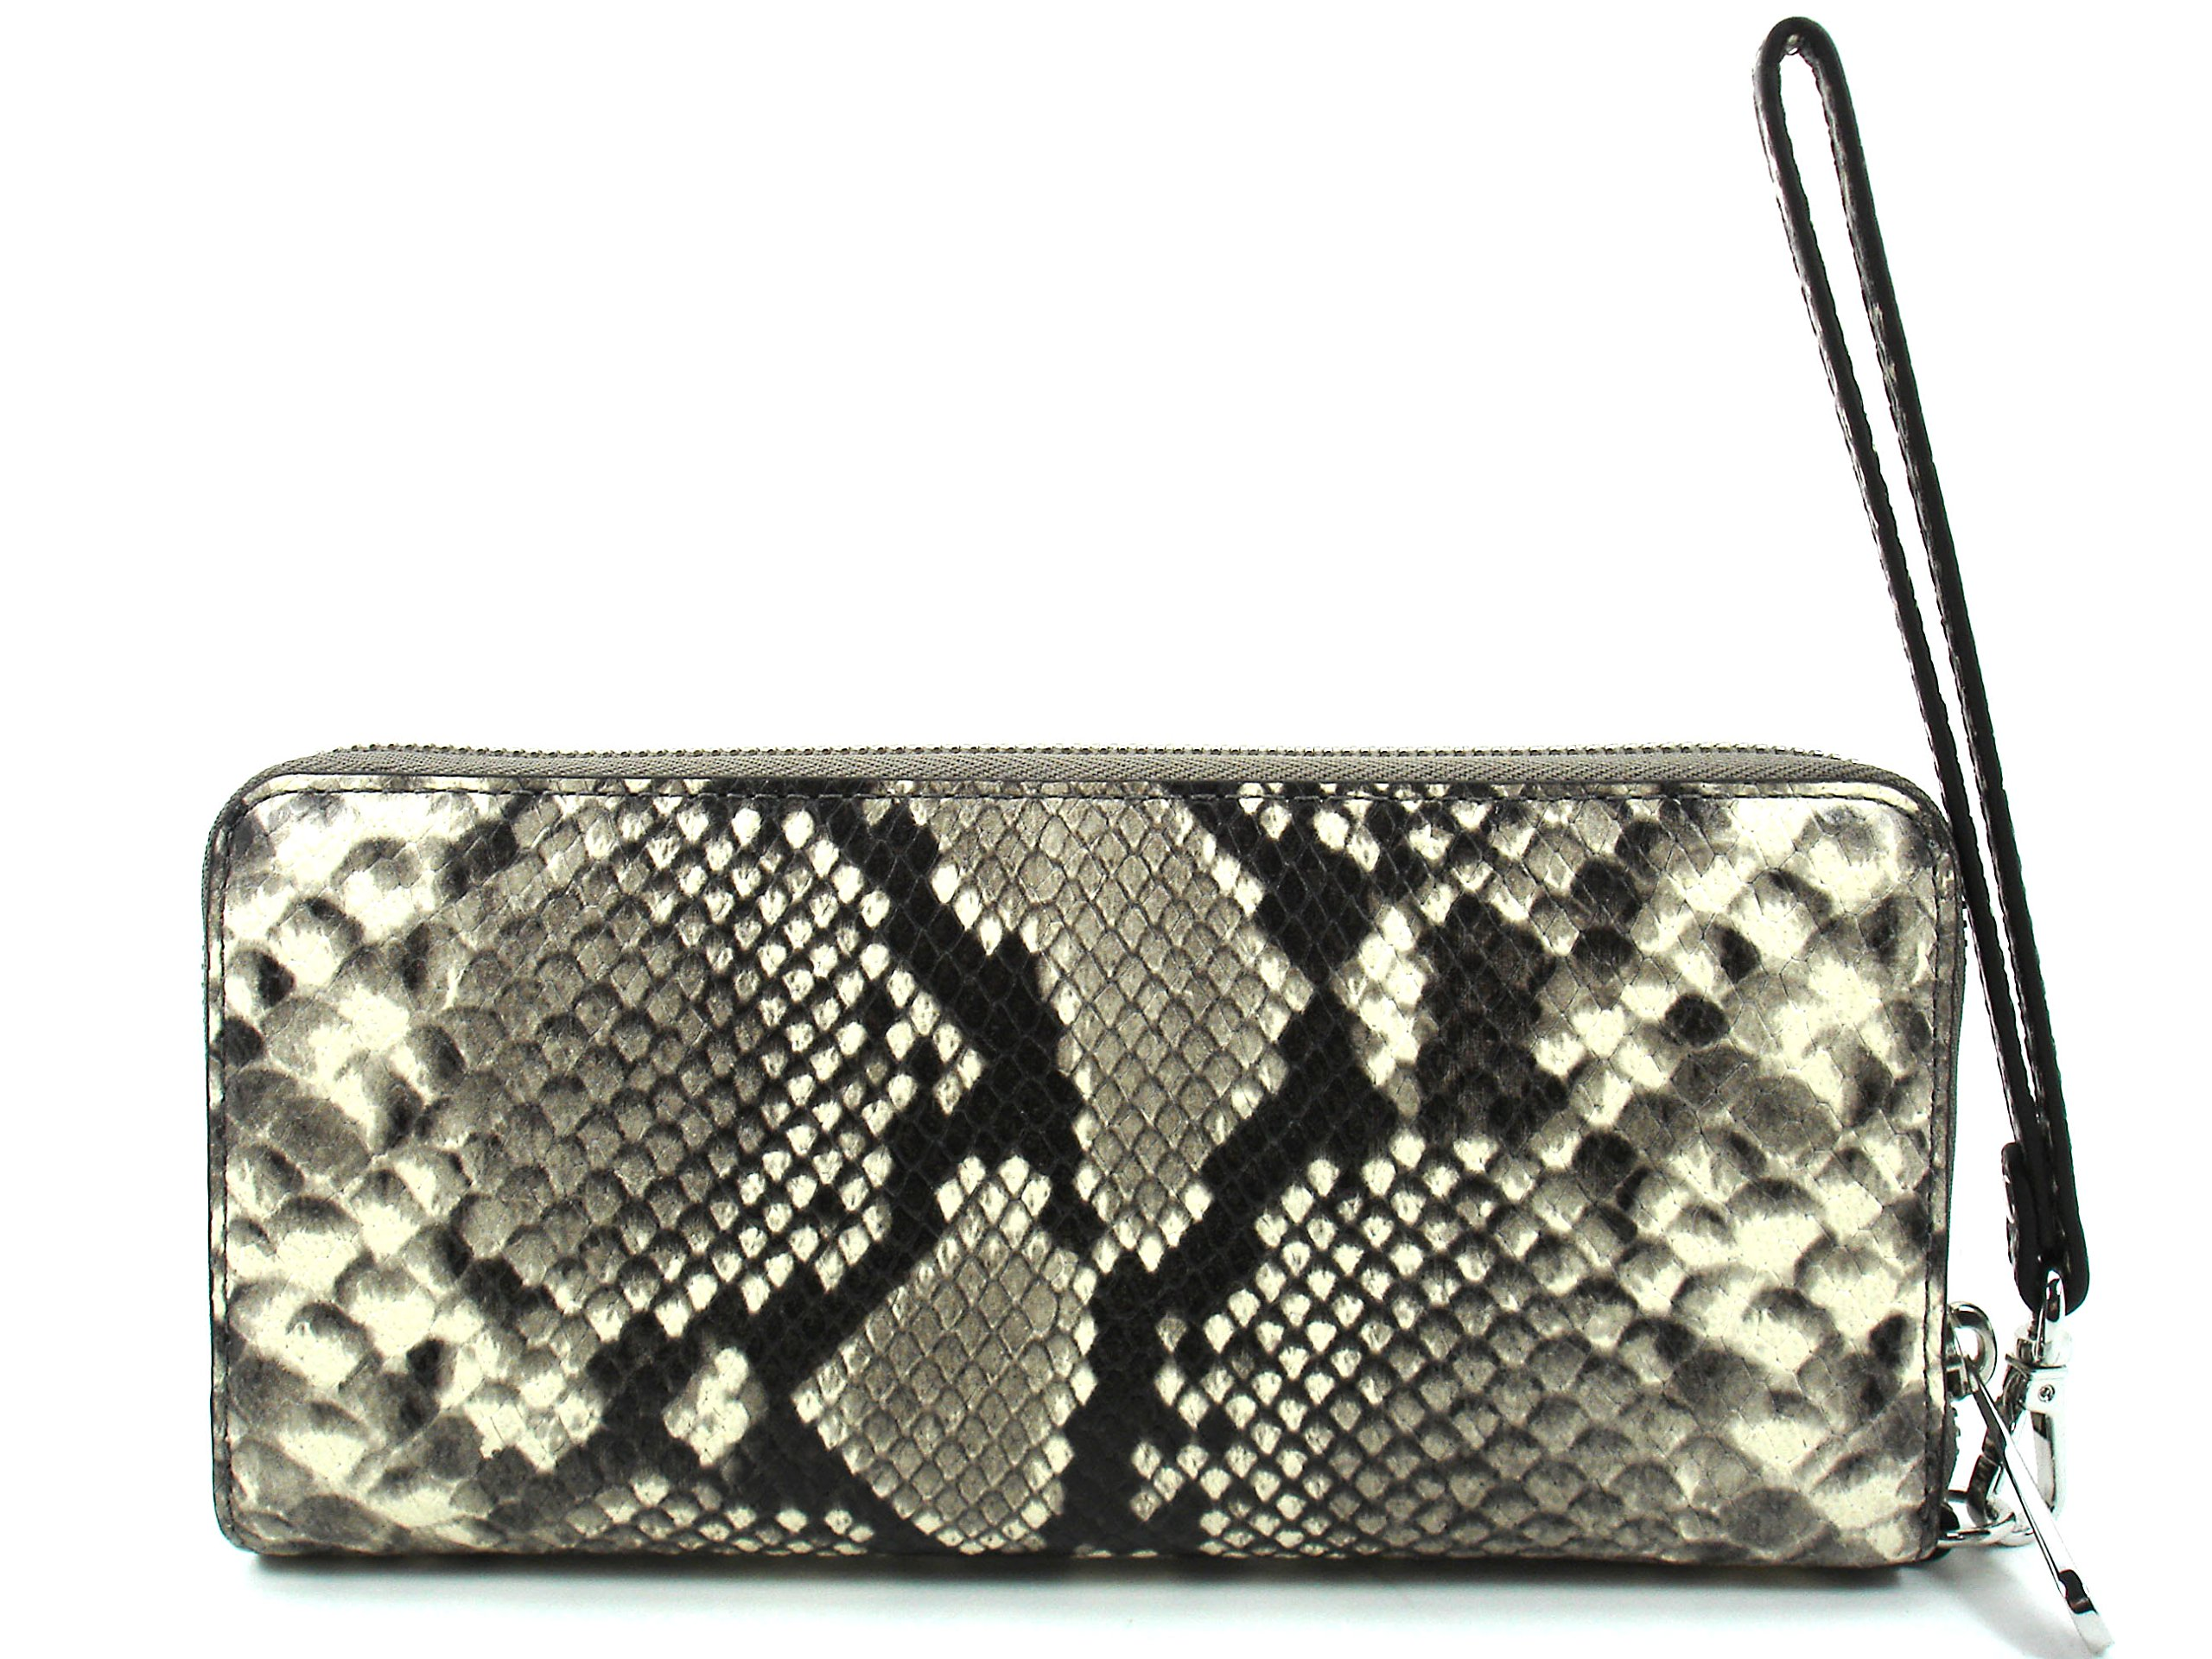 Michael Kors Women's Jet Set Travel Embossed Leather Wristlet - Natural by Michael Kors (Image #2)